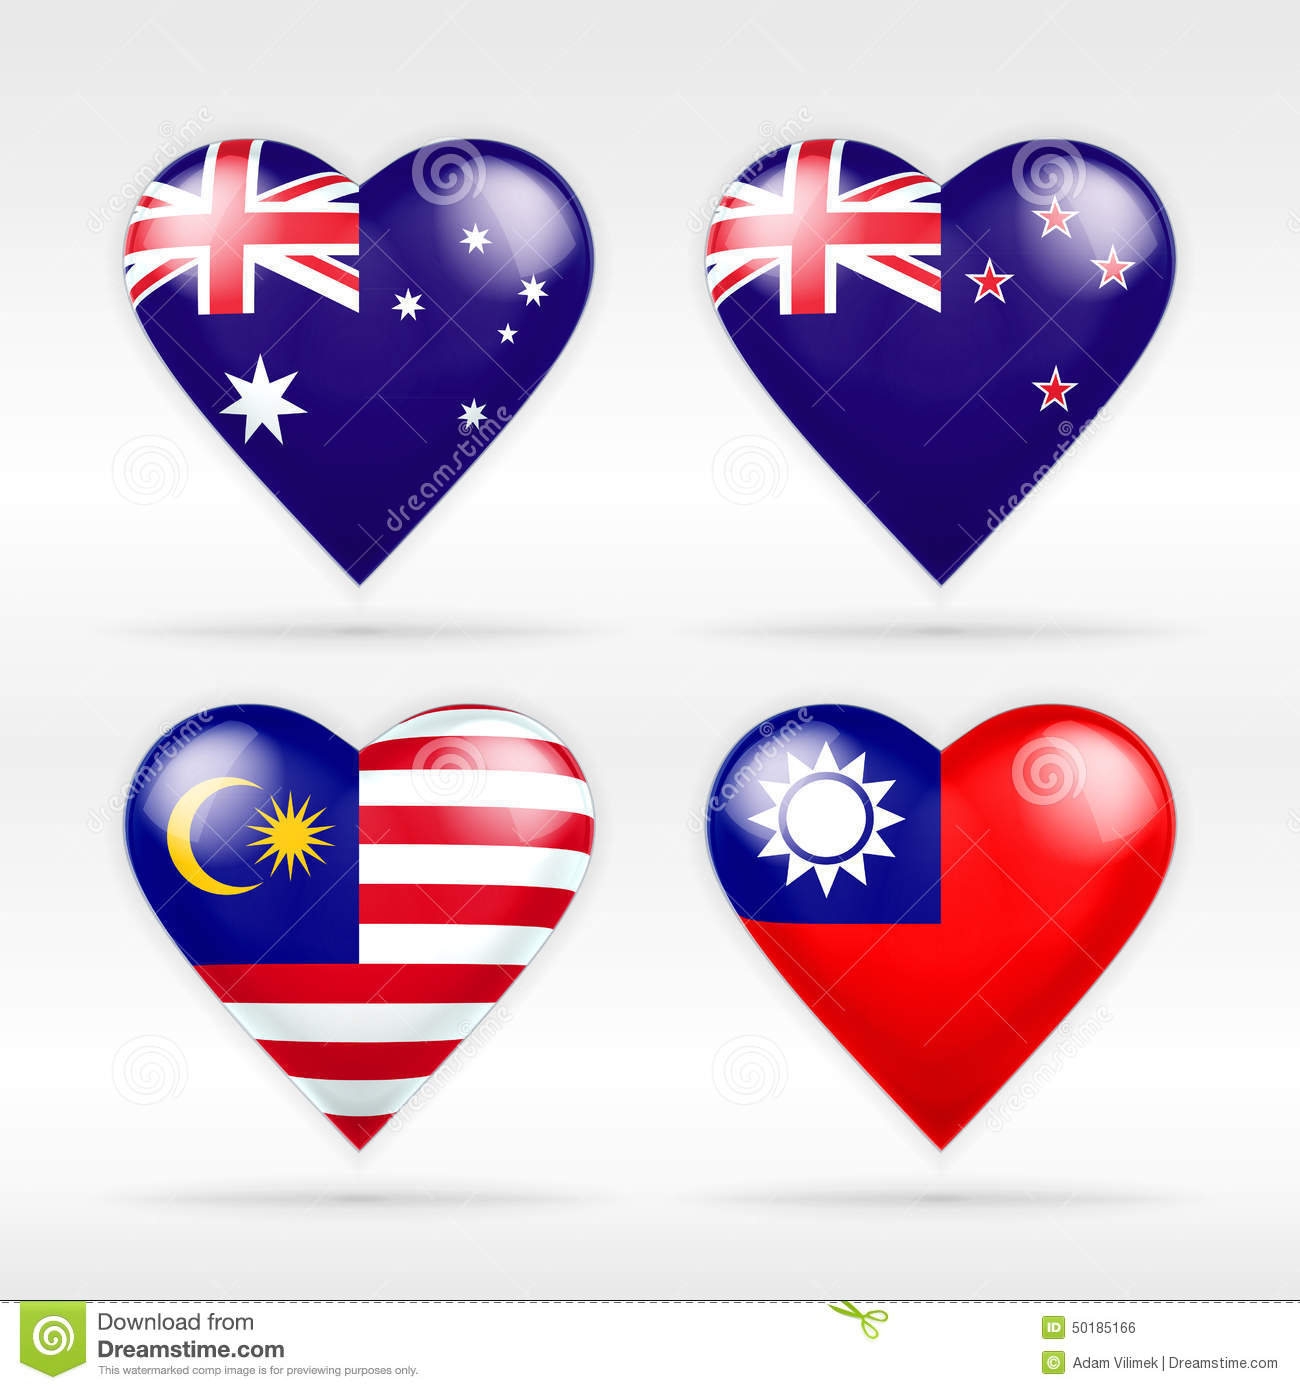 Australia, New Zealand, Malaysia and Taiwan heart flag set of national states